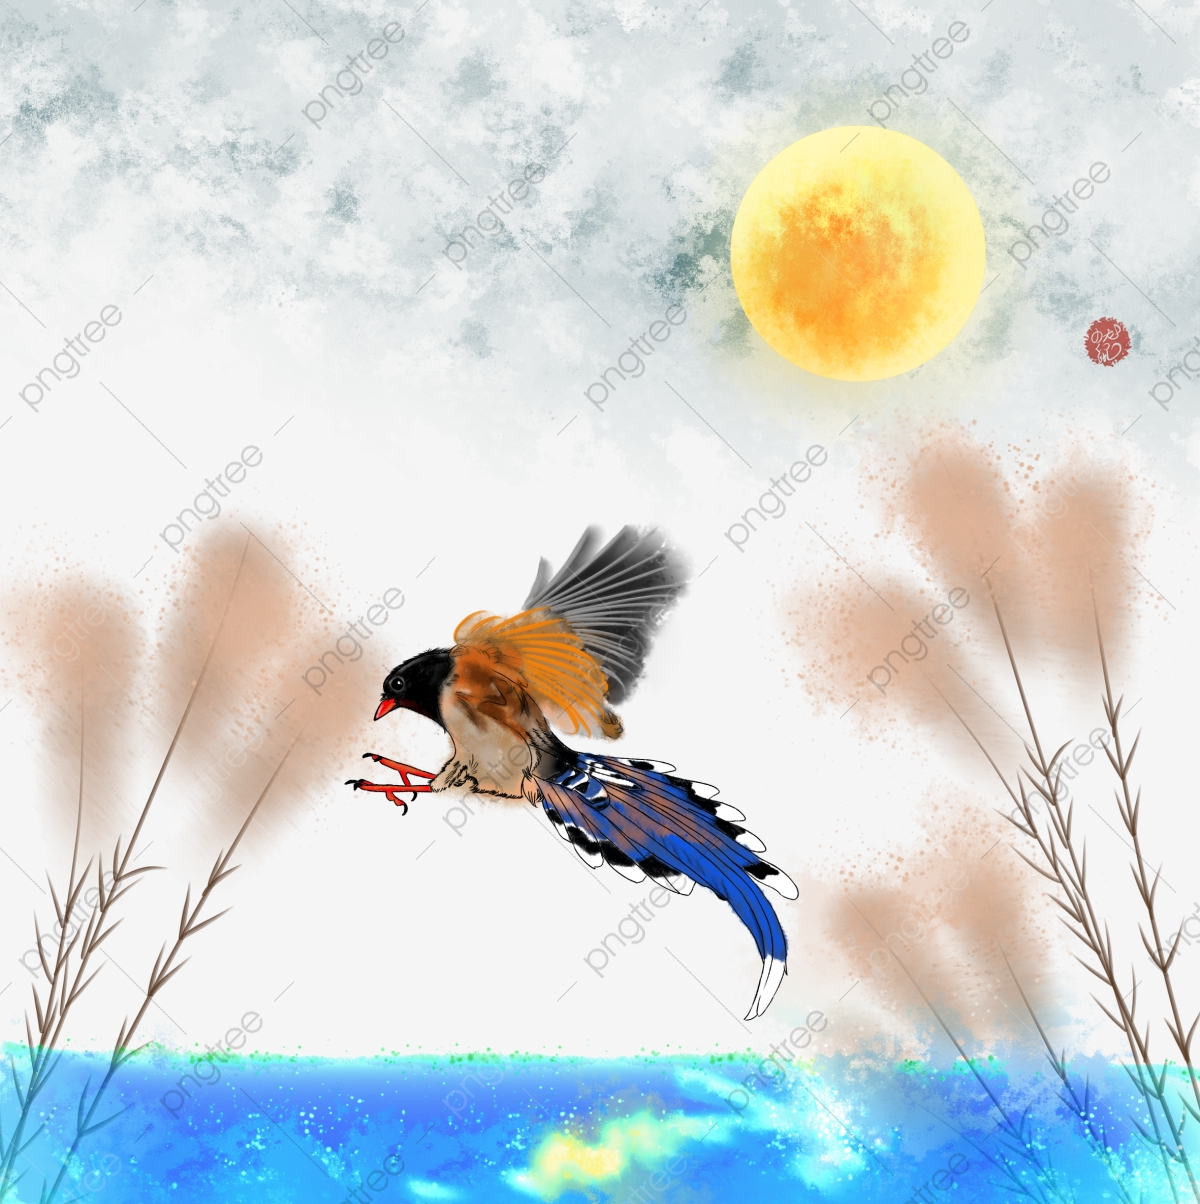 Chinese style watercolor light. Lake clipart sunny